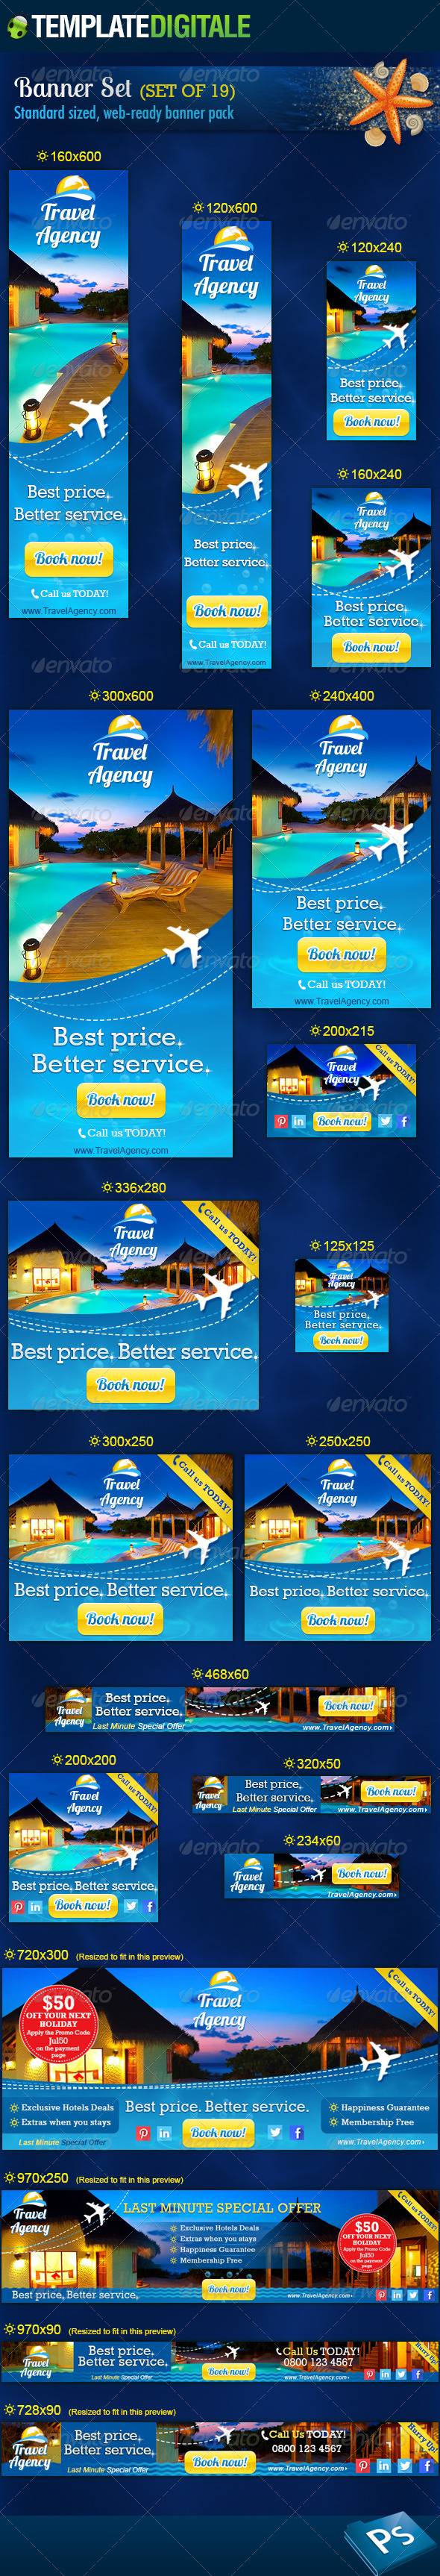 Travel Agency Banner Set - Banners & Ads Web Elements